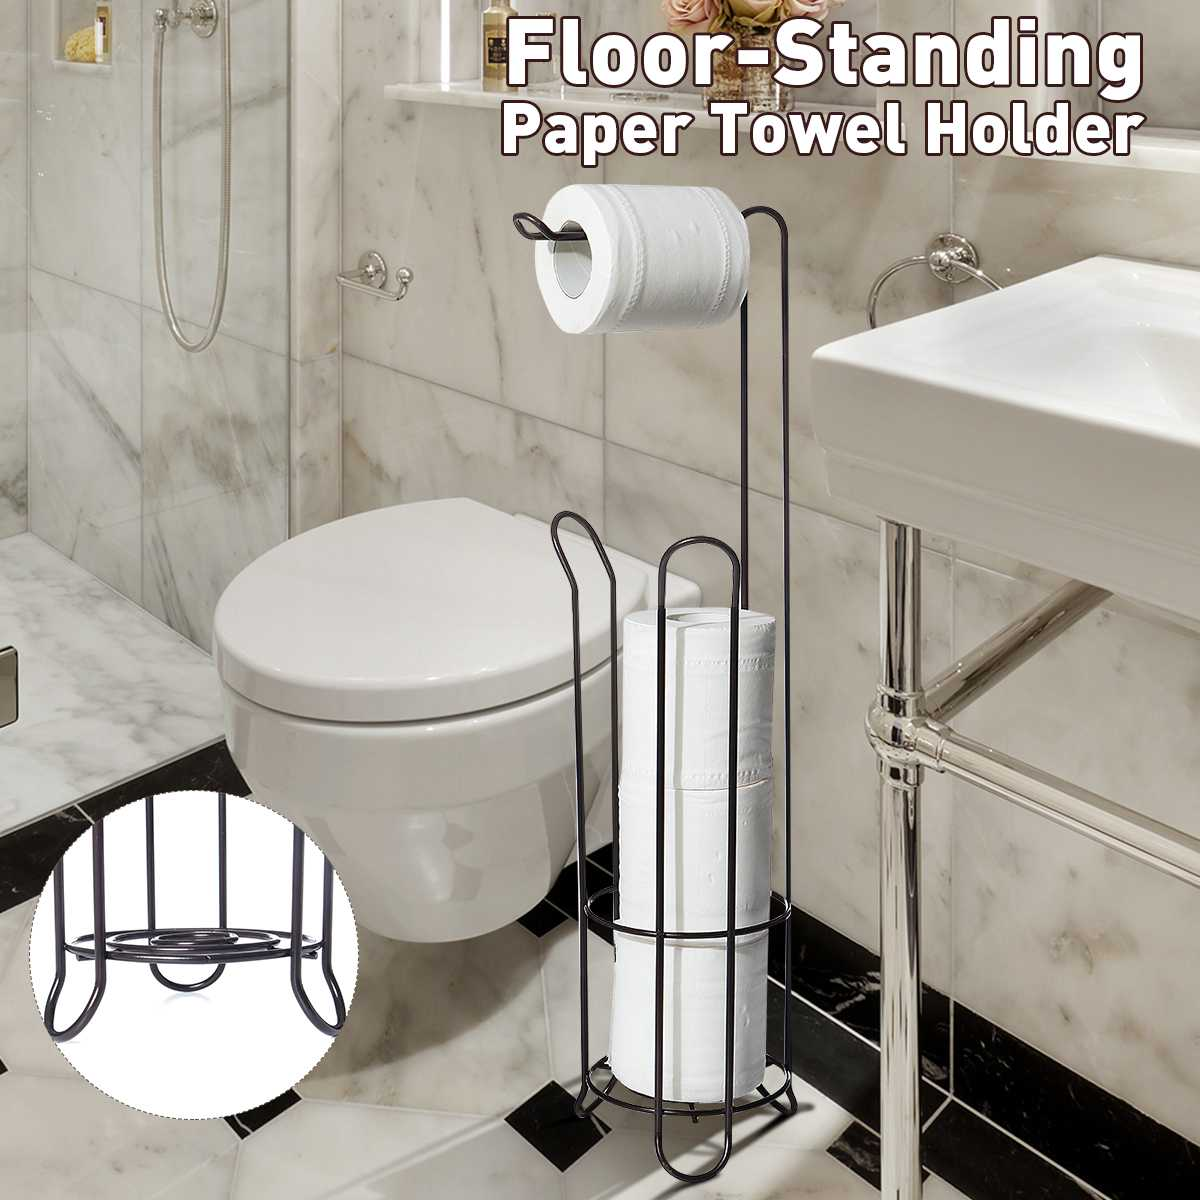 Iron Large Stand Toilet Paper Holder Tissue Roll Rack Bathroom Storage Container Bath Accessories Kitchen Organizer Freestanding